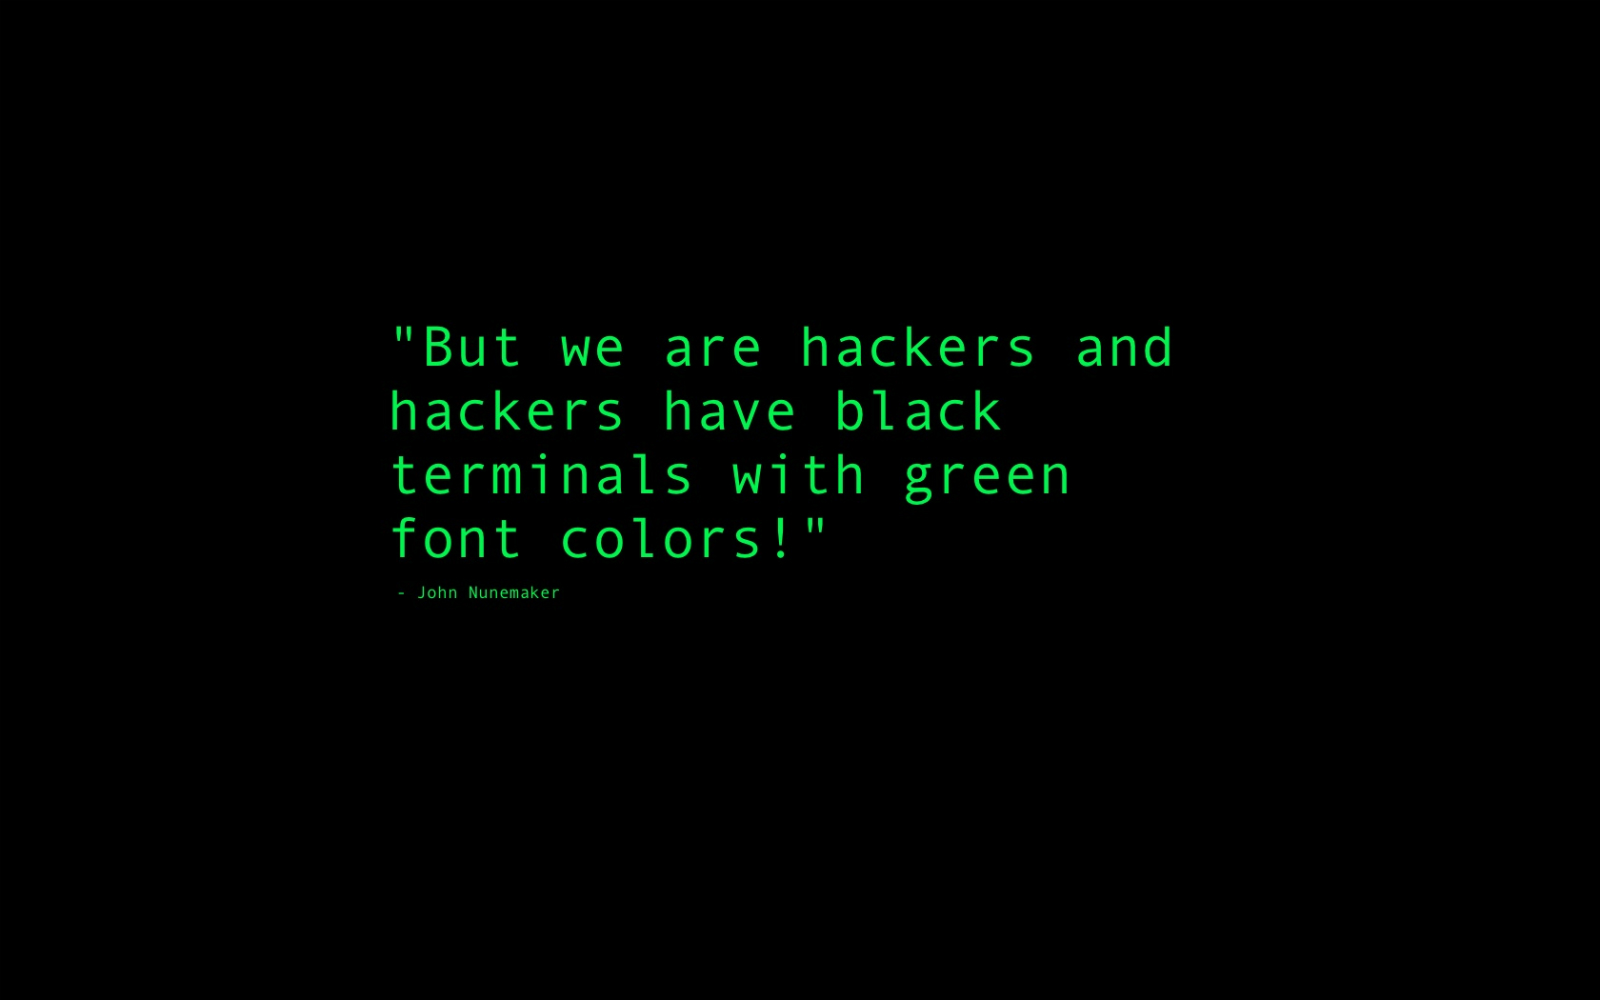 hacking wallpapers desktop - photo #26